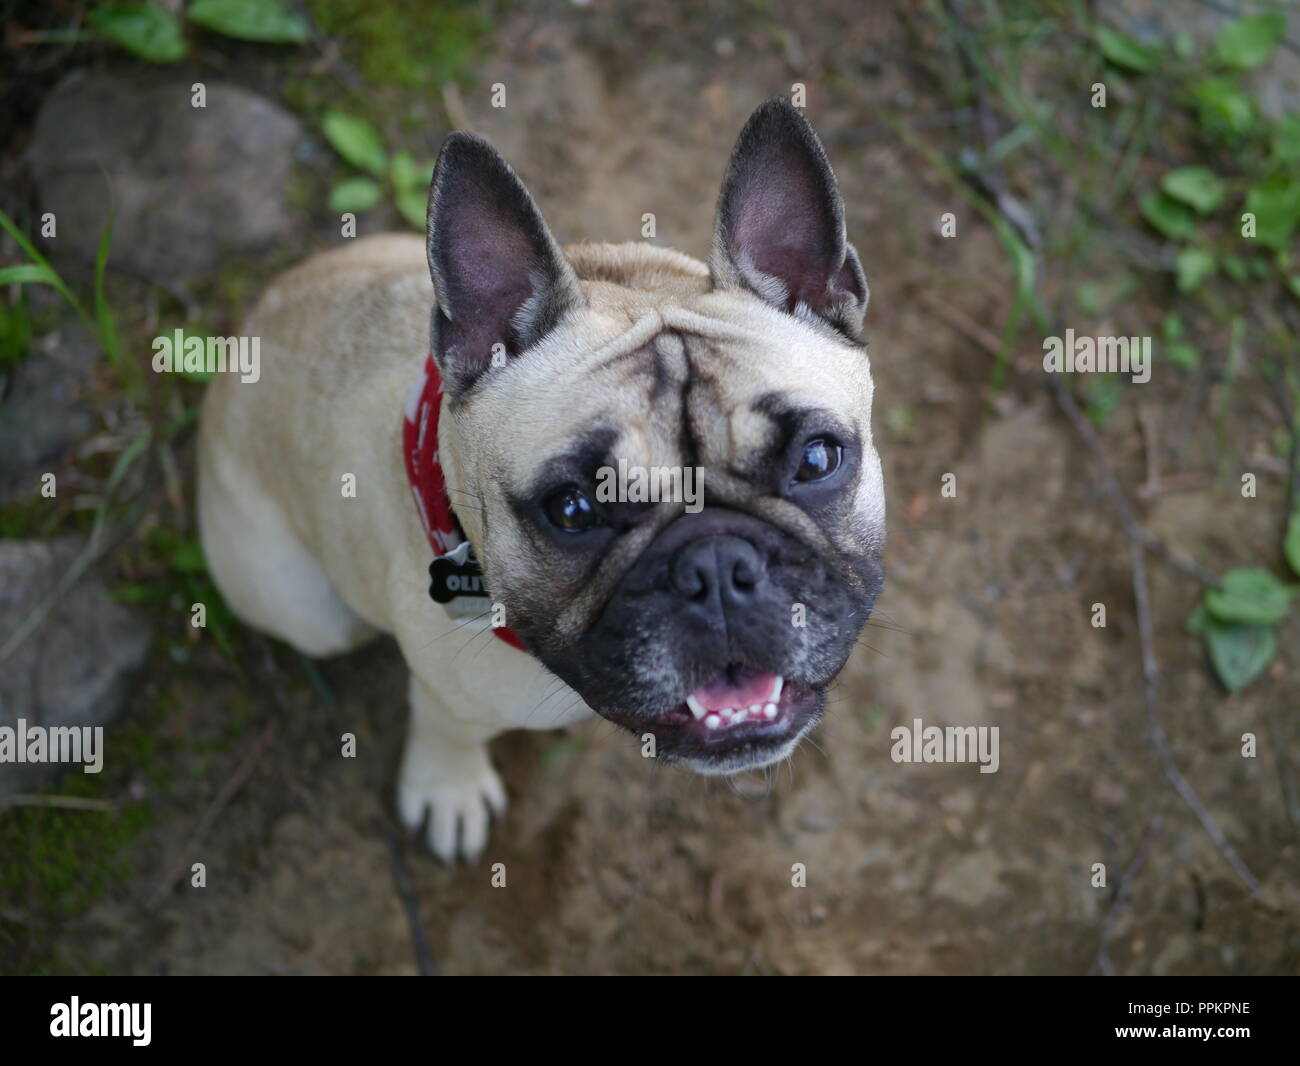 Frenchie at the Cottage - Stock Image